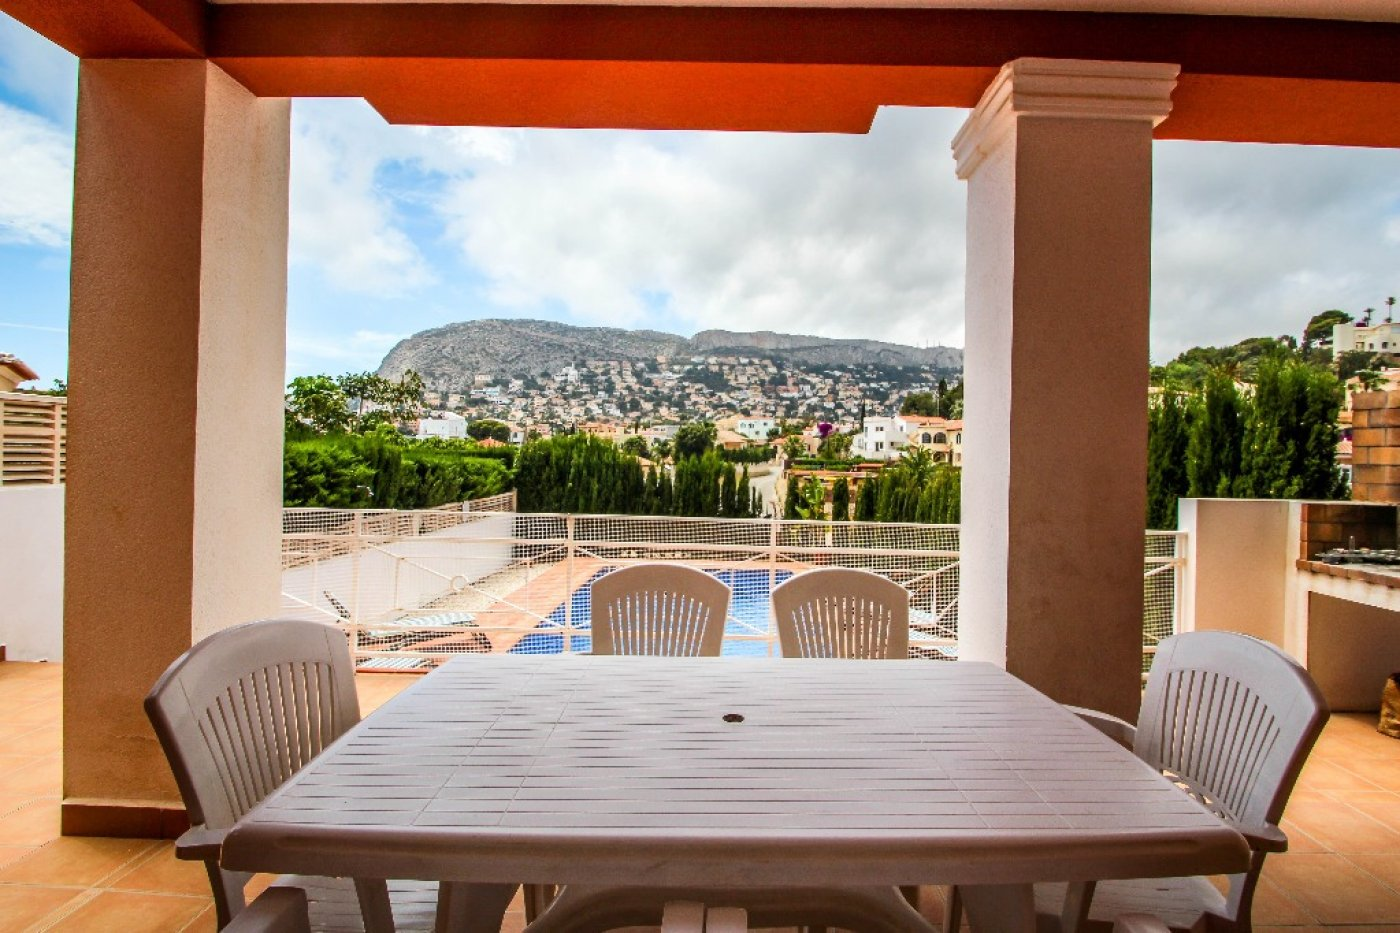 Villa - Ready To Move And Live - Puerto Blanco - Calpe